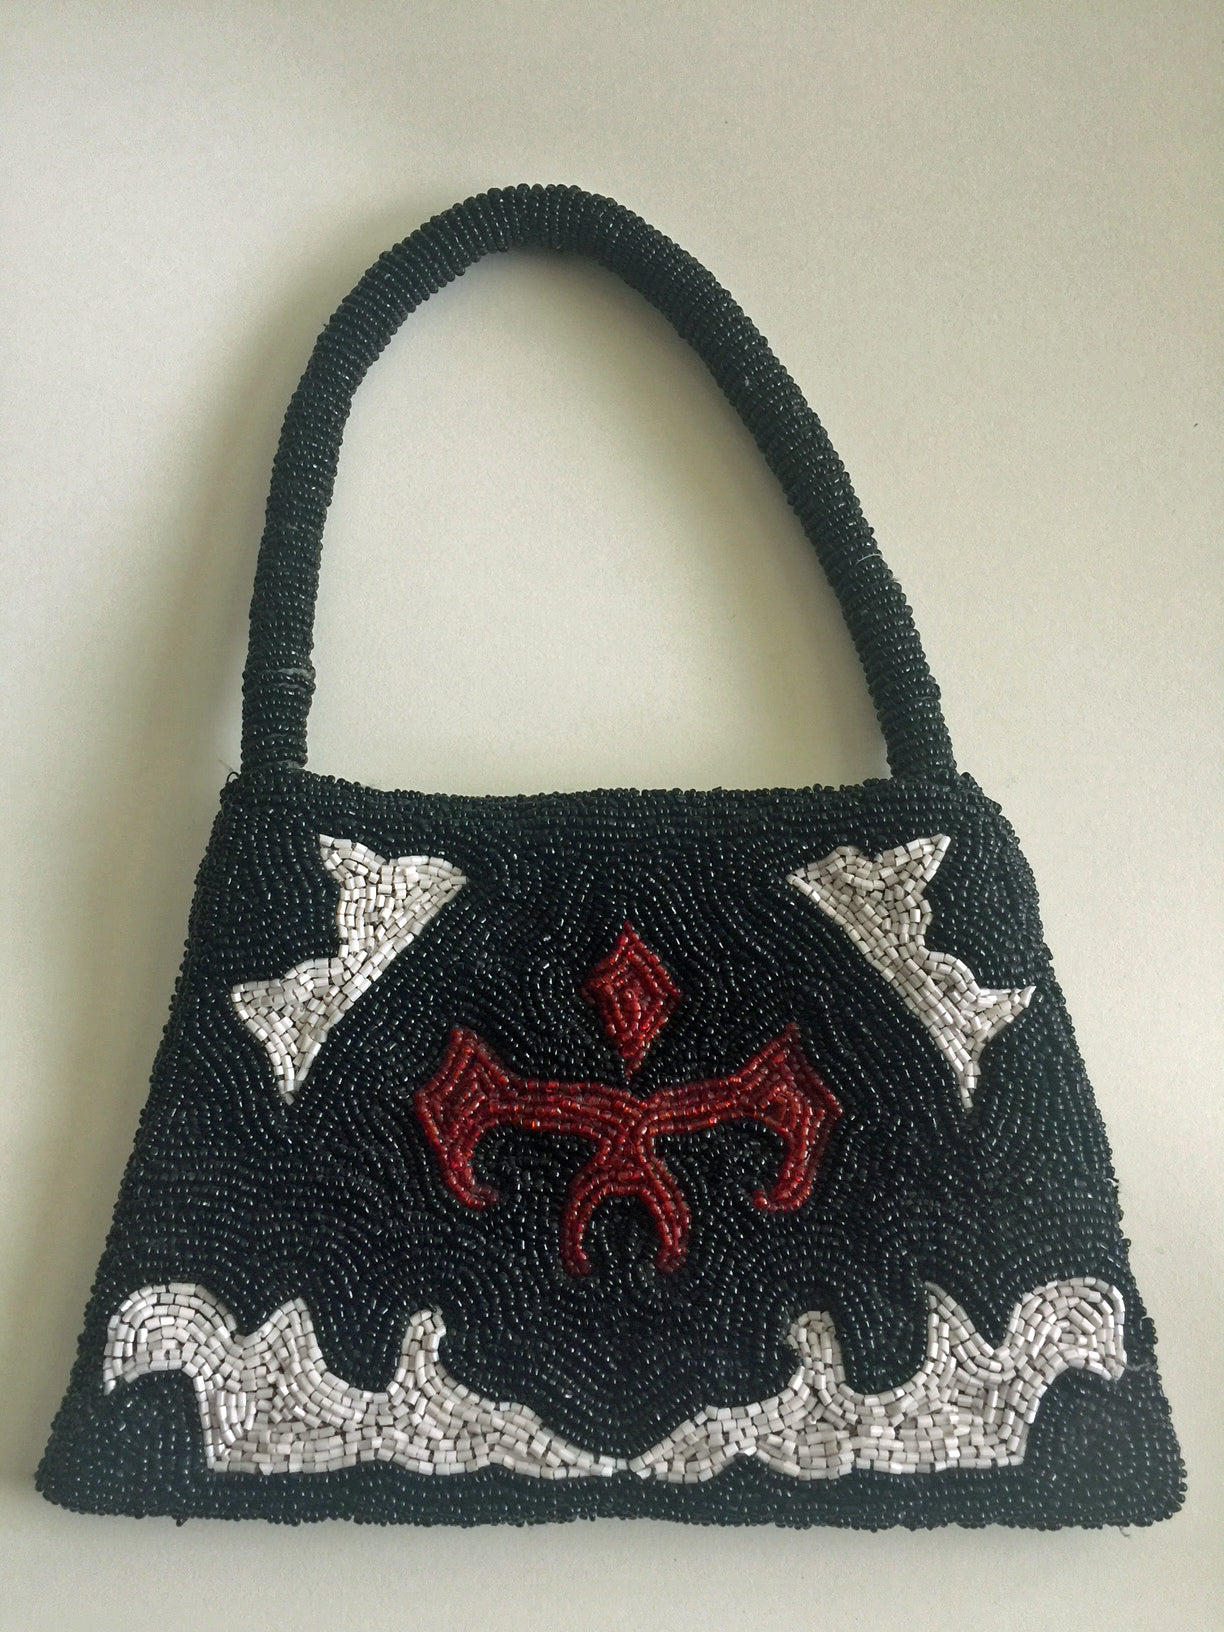 Vintage Beaded Bag Purse 60s/70s Retro Handbag Beautiful Unusual Design